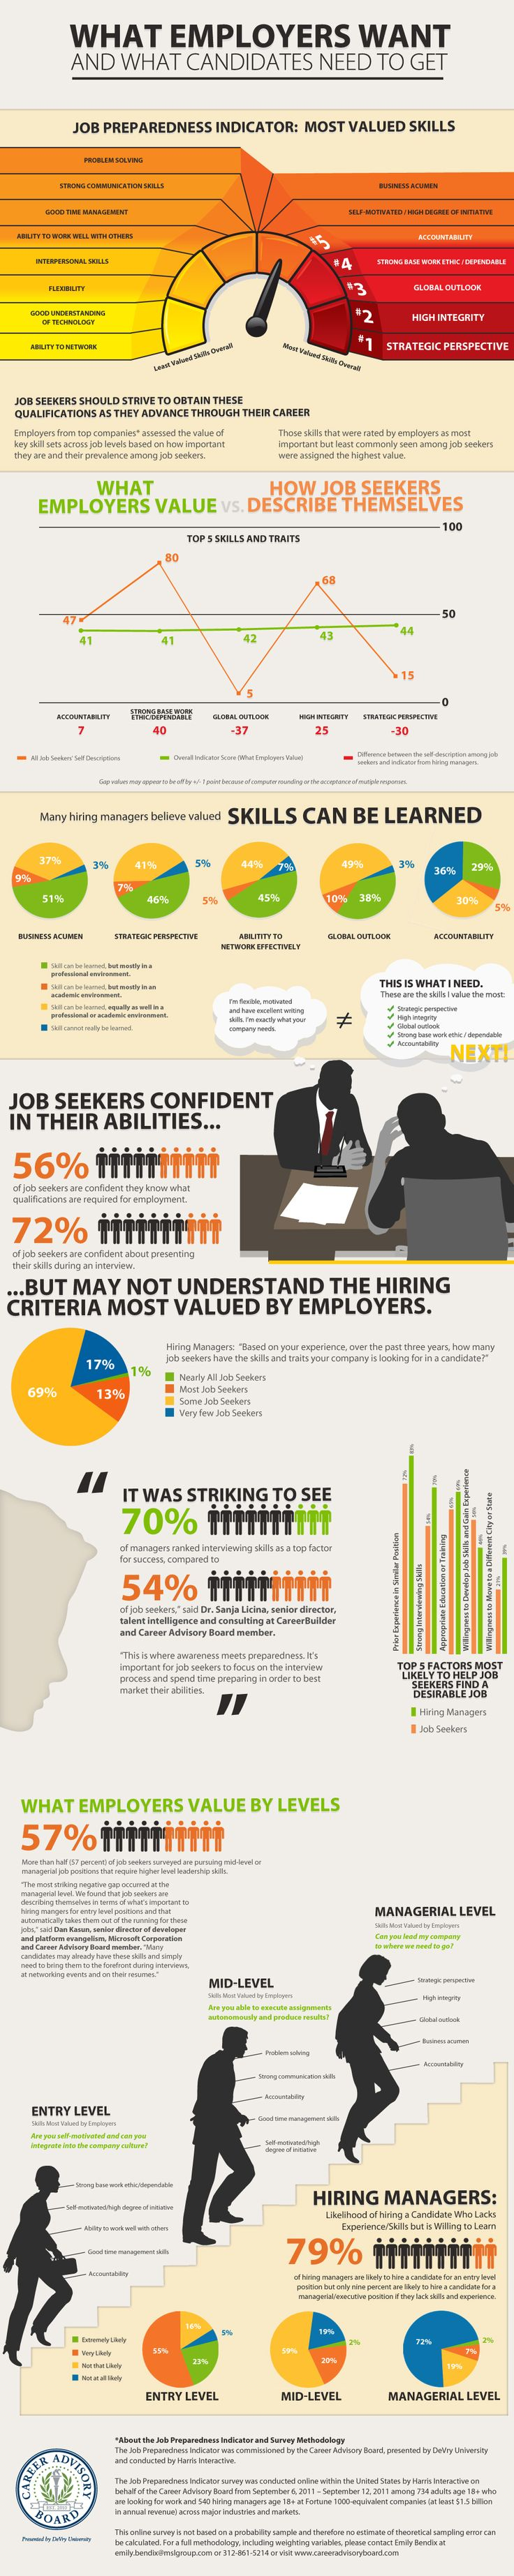 What #Employers Want and What Candidates Need to Get [www.dodgen.co] #jobsearch #interview